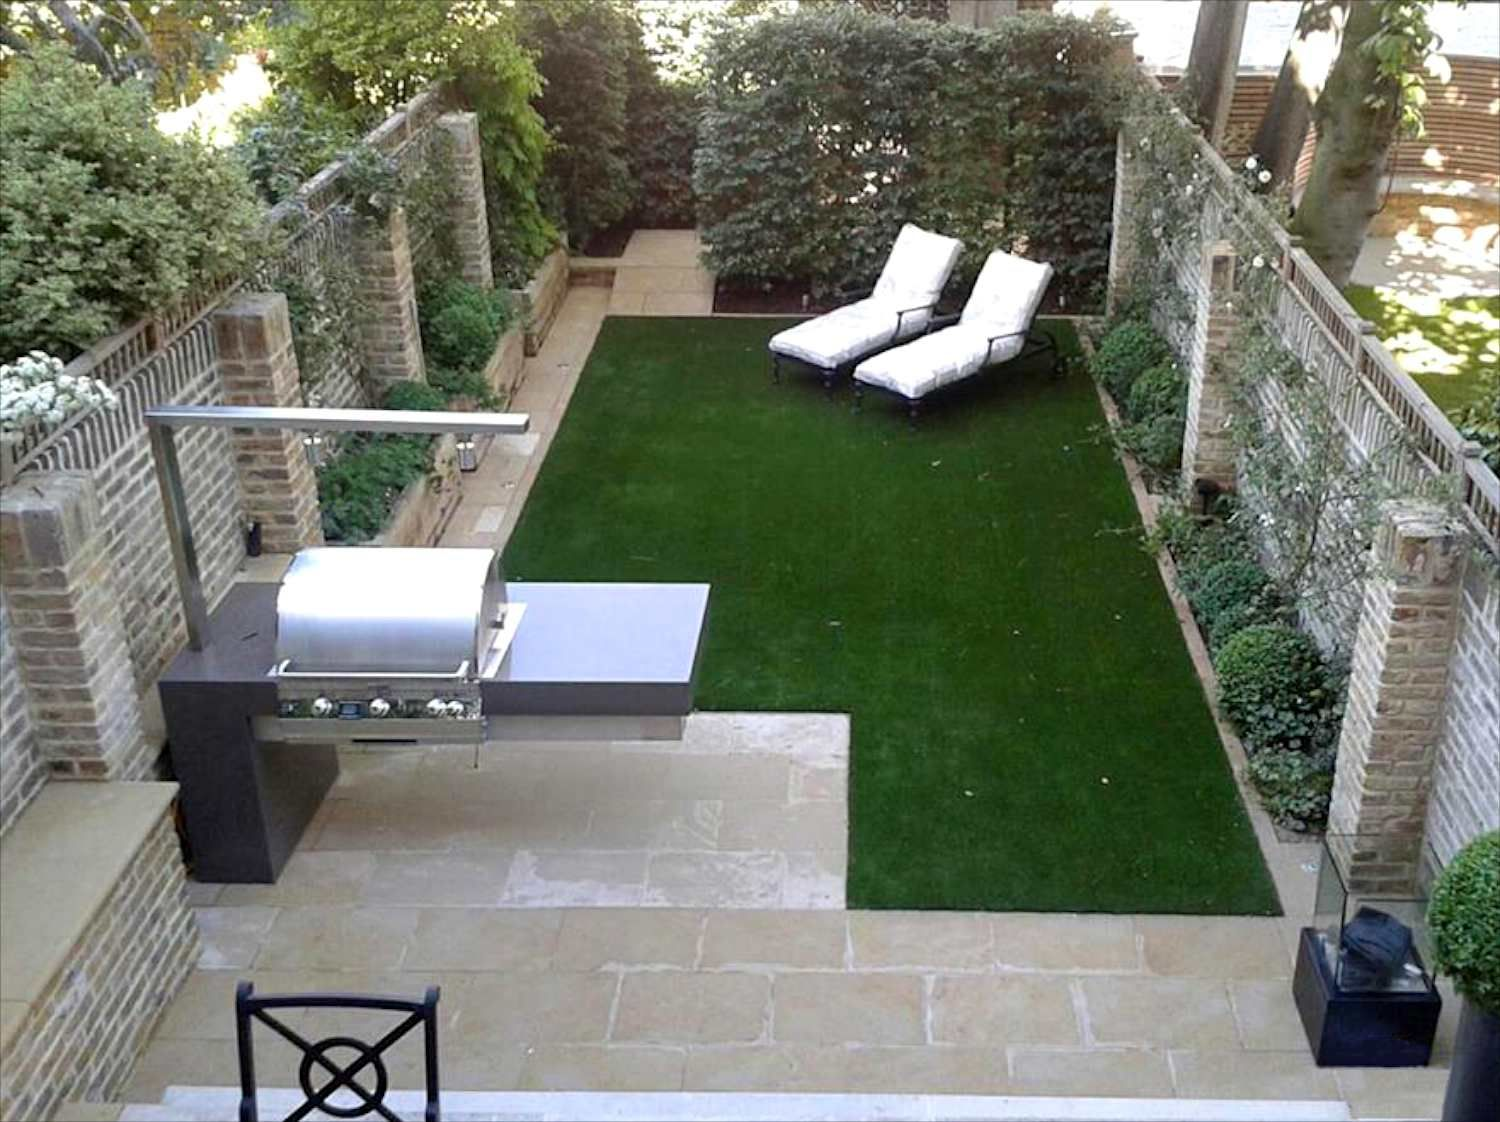 outdoor barbecue design uk | Modern garden design ... on Modern Landscaping Ideas For Small Backyards id=52358